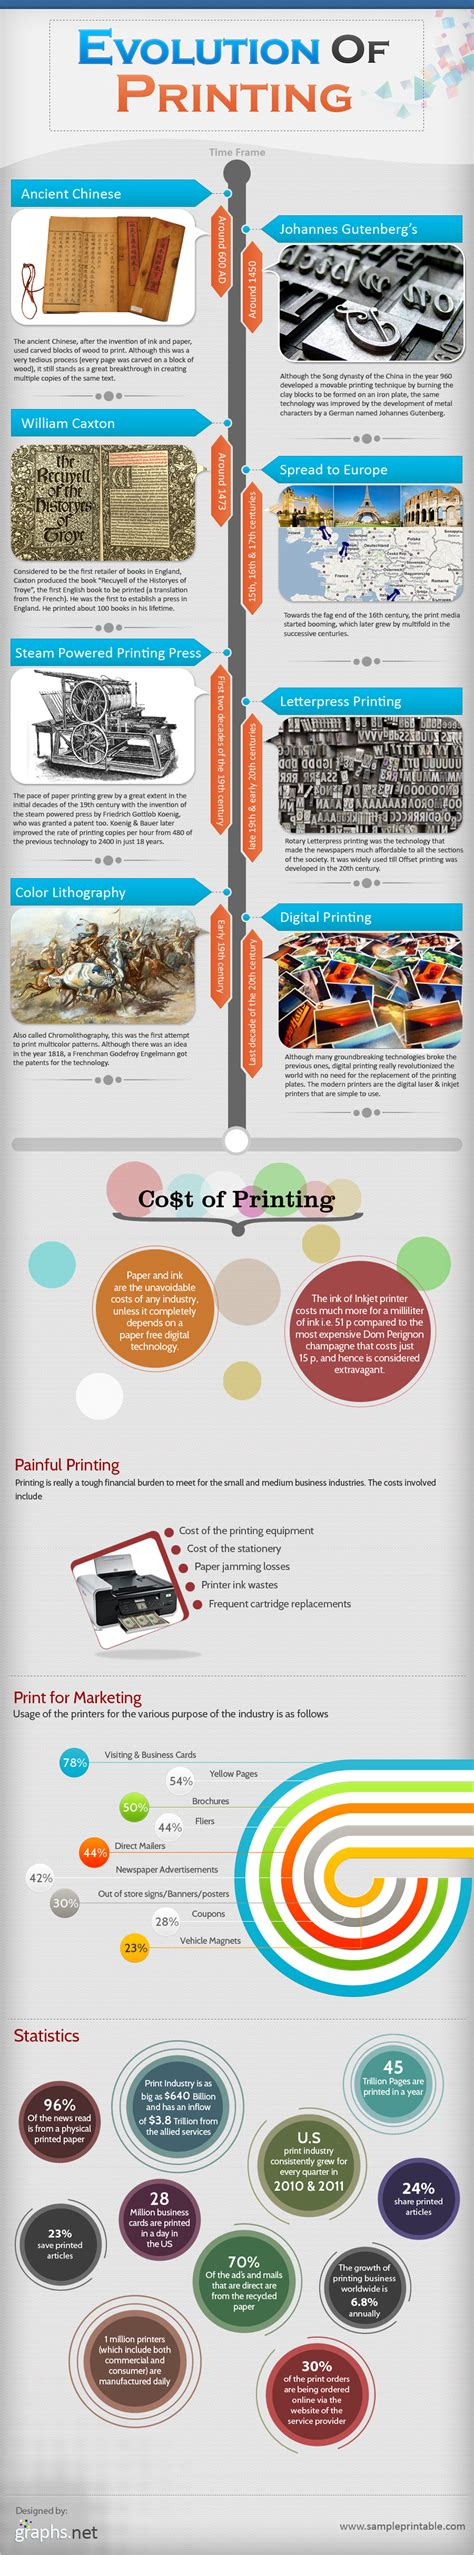 Evolution of Printing